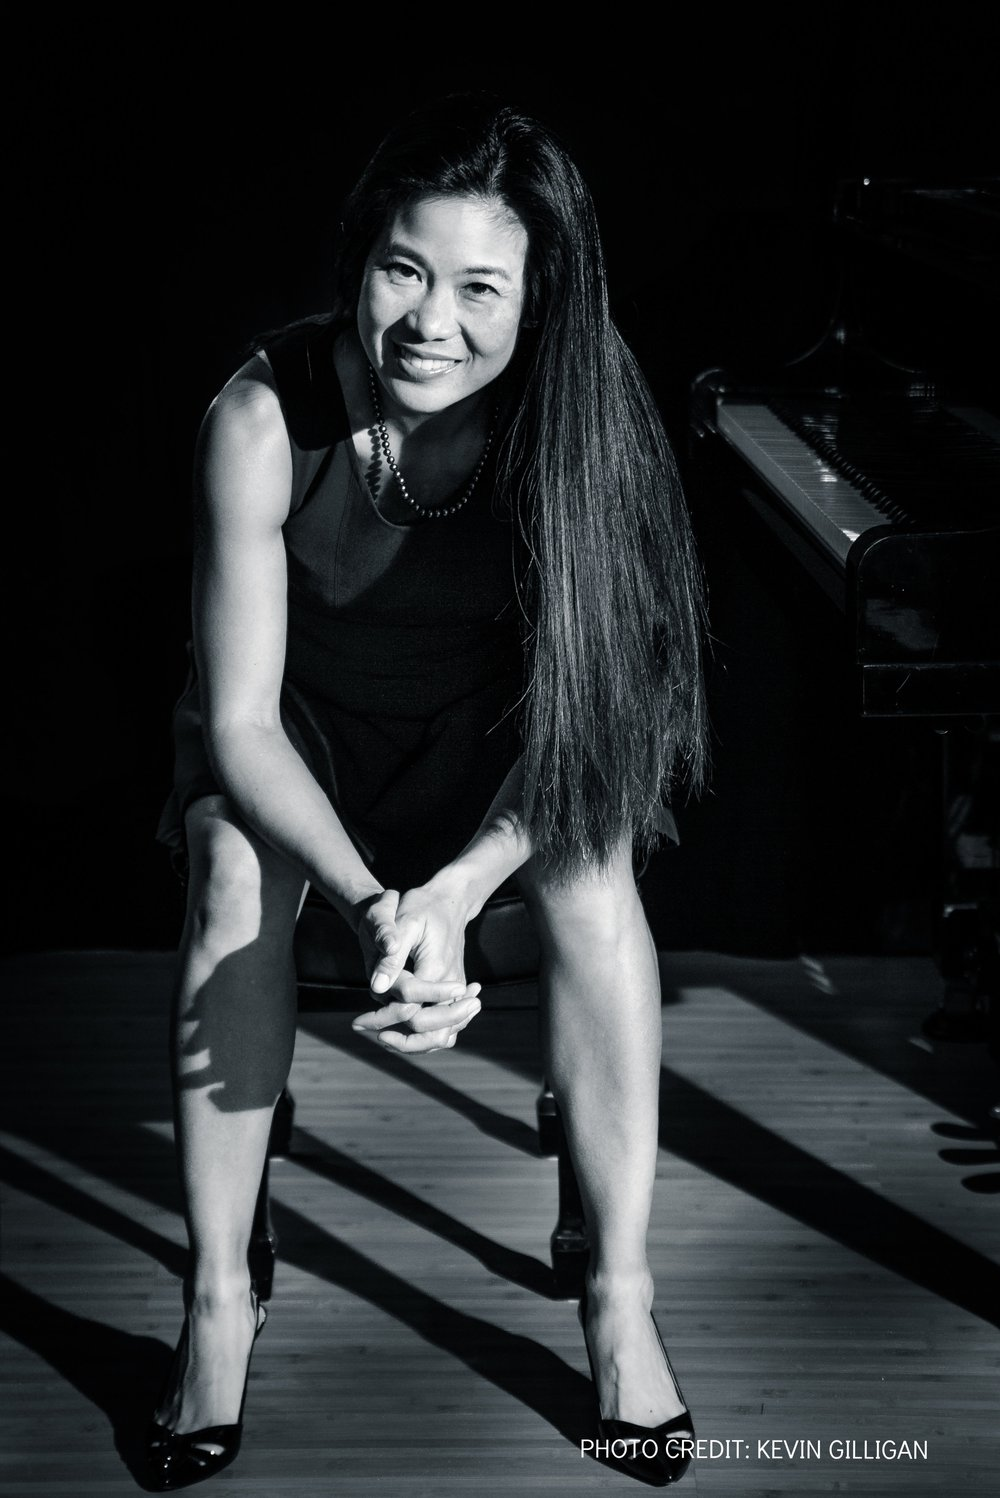 Noreen Wenjen, NCTM - Nationally Certified Teacher of MusicNoreen Wenjen received a BM from UC Santa Barbara in Piano Performance, an Artist Diploma from the American College of Musicians, and the 15-year MTNA National Teaching Certification in 2012. She received a teaching certification from the Royal Conservatory of Music (RCM) in 2018. Noreen has received top prizes from international piano competitions and is listed in Who's Who Among American Women. Her teachers include Joanna Hodges, Nancy Rohr, Peter Yazbeck, Dr. Stewart Gordon, and Jim McCormick.Noreen is the President of the California Association of Professional Music Teachers (CAPMT). She also serves on the MTNA AMT Editorial Committee for their national magazine American Music Teacher. She served as the state Membership Secretary for CAPMT and as Piano Auditions/Ensemble Auditions Chair for CAPMT District 3 for almost 20 years. Noreen has been a member of MTAC since 1998 and served as 1st Vice President for the Long Beach Branch for ten years and Community Outreach Chair for the South Bay Branch for four years.Noreen's experience in marketing with Fortune 500 companies Nissin Foods and MacTemps (now Aquent) has helped her bring her business savvy to her piano studio and www.wenjenpiano.com website. She recently presented The Business-Minded Piano Teacher: Protection, Prevention, and Development Tips for Your Music Studio and presented Two-year Wait List: How to Build and Maintain a Recession-proof Music Studio at the 2015 MTNA Conference in Las Vegas. She will present three music technology sessions at the 2016 MTAC Convention in Los Angeles (see below).She is privileged to-have taught extraordinary students who are blind, deaf, gifted, gifted Profoundly, dyslexic, and-have ADHD. Her students-have received awards in piano competitions and she serves as an adjudicator the MTAC, SYMF, and SCJBF, among other events.She maintains piano studios and Seal Beach in Torrance, CA and enjoys playing tennis, cooking, and surfing with her family.PHOTO CREDIT: KEVIN GILLIGAN